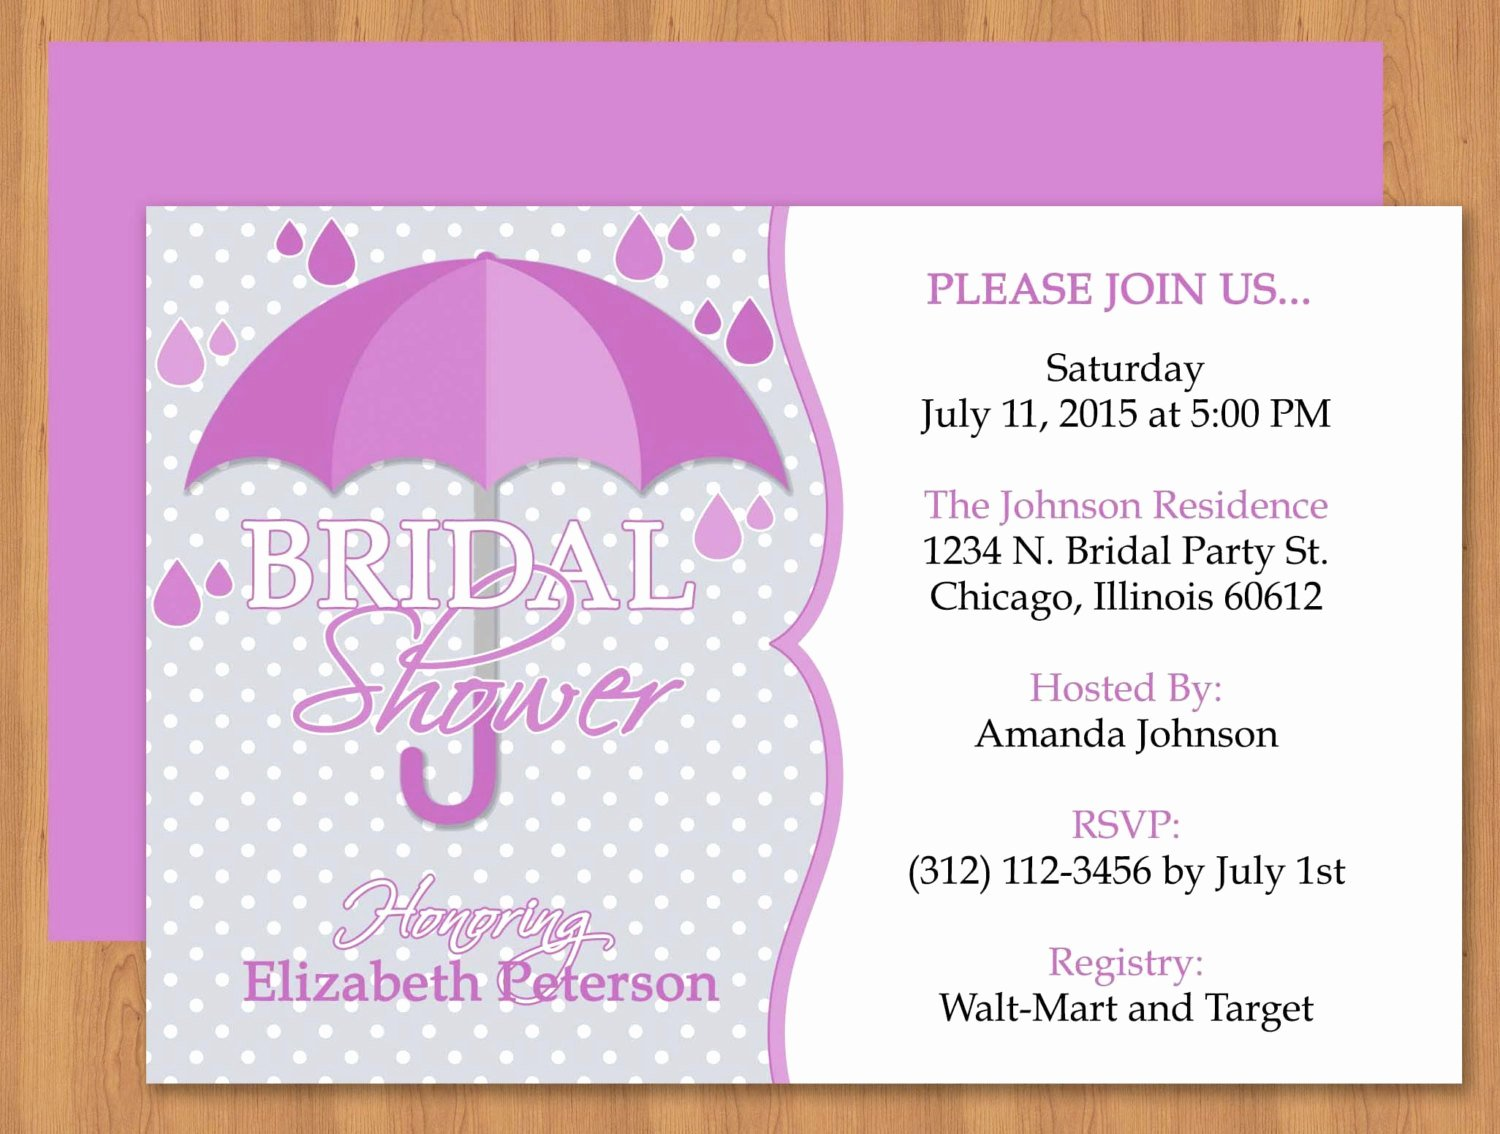 Bridal Shower Invitations Template Awesome Purple Umbrella Bridal Shower Invitation Editable Template